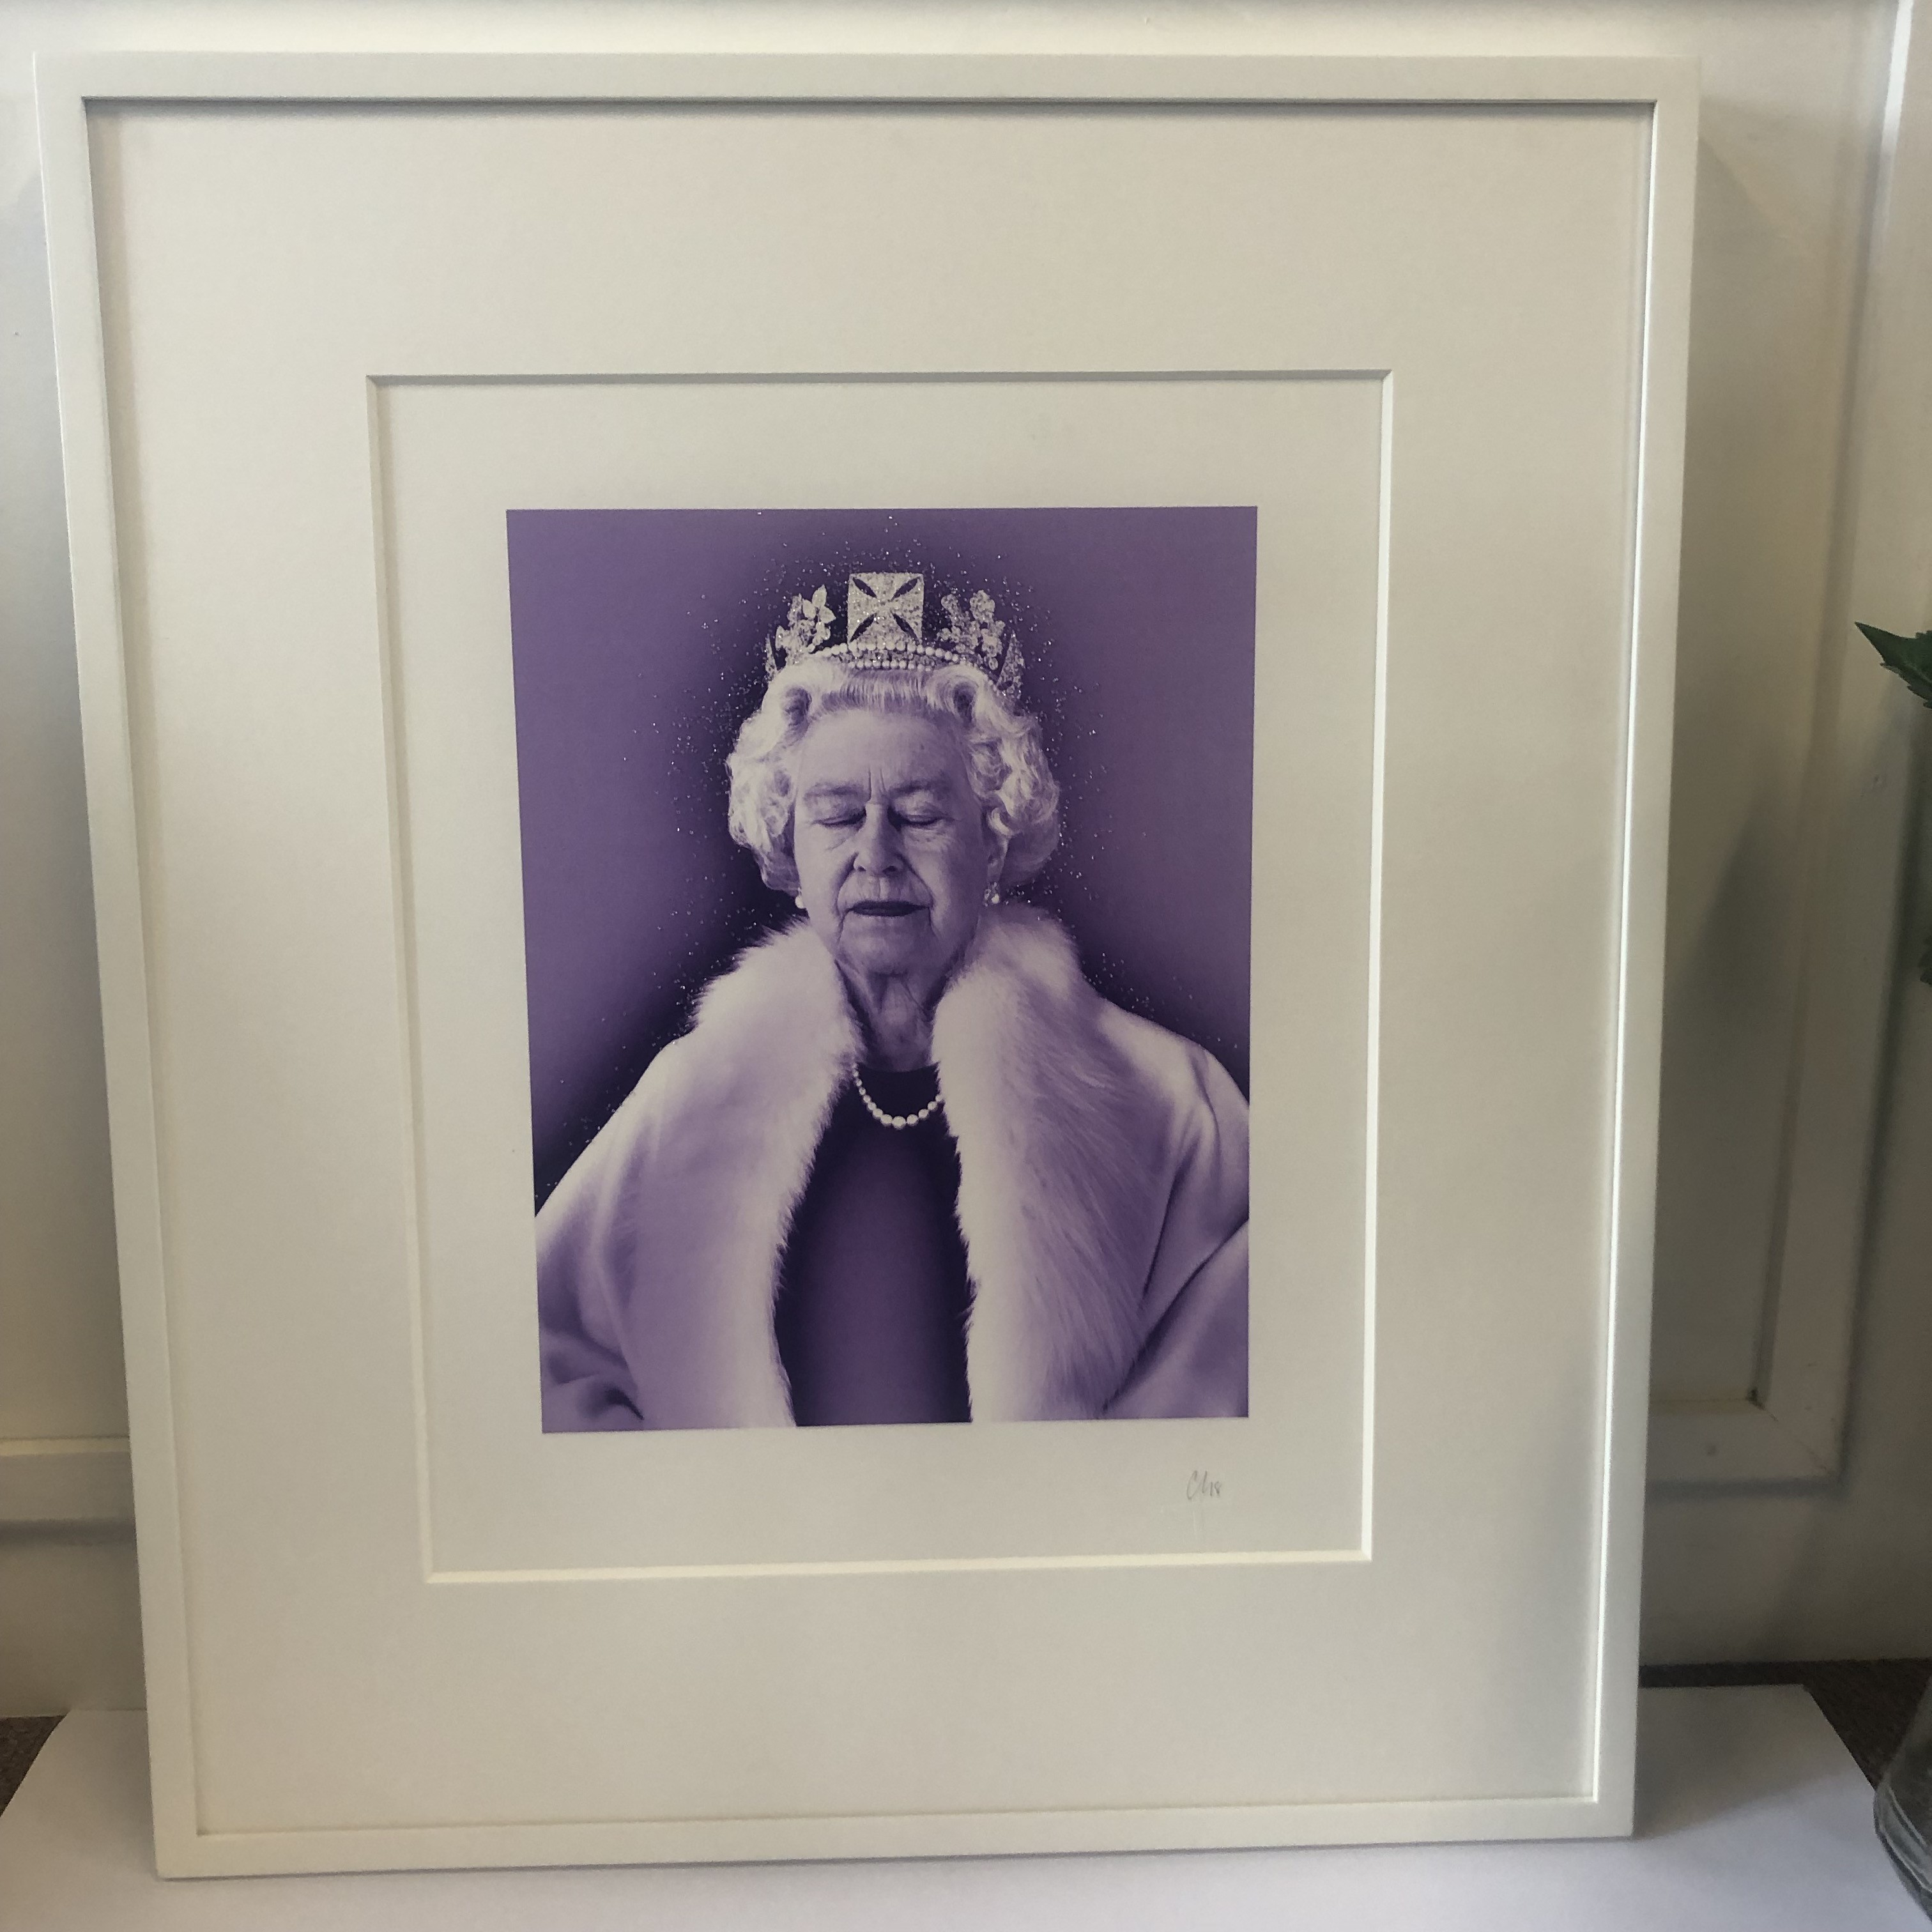 Portrait of the Queen by Chris Levine. A purple screen print with swarovski crystals applied.